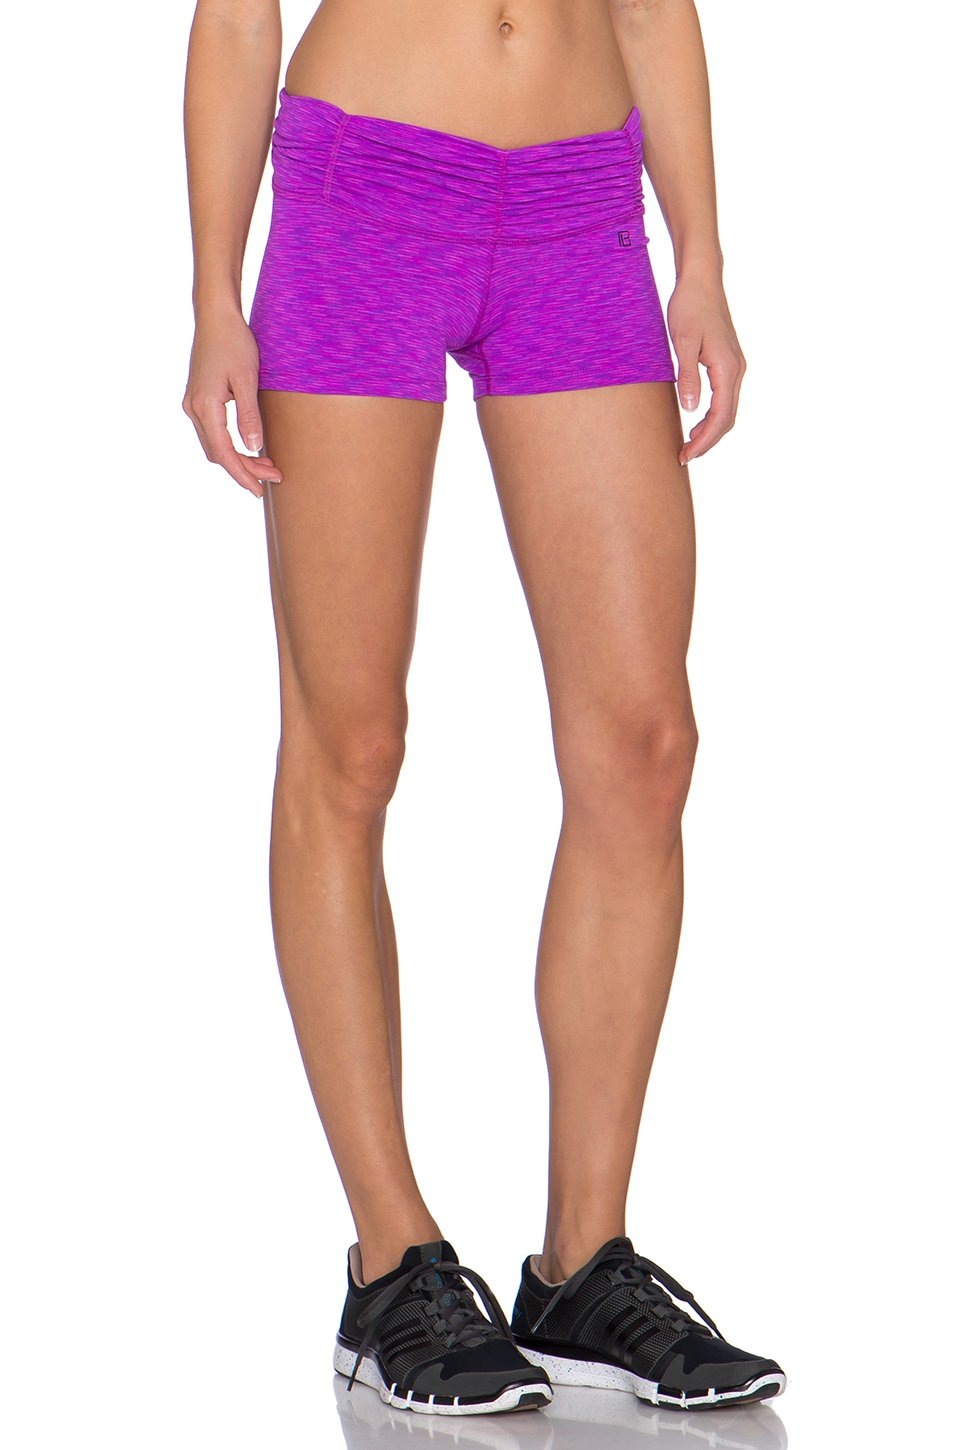 Body Language Sportswear Scrunchy Short by Body Language Sportswear